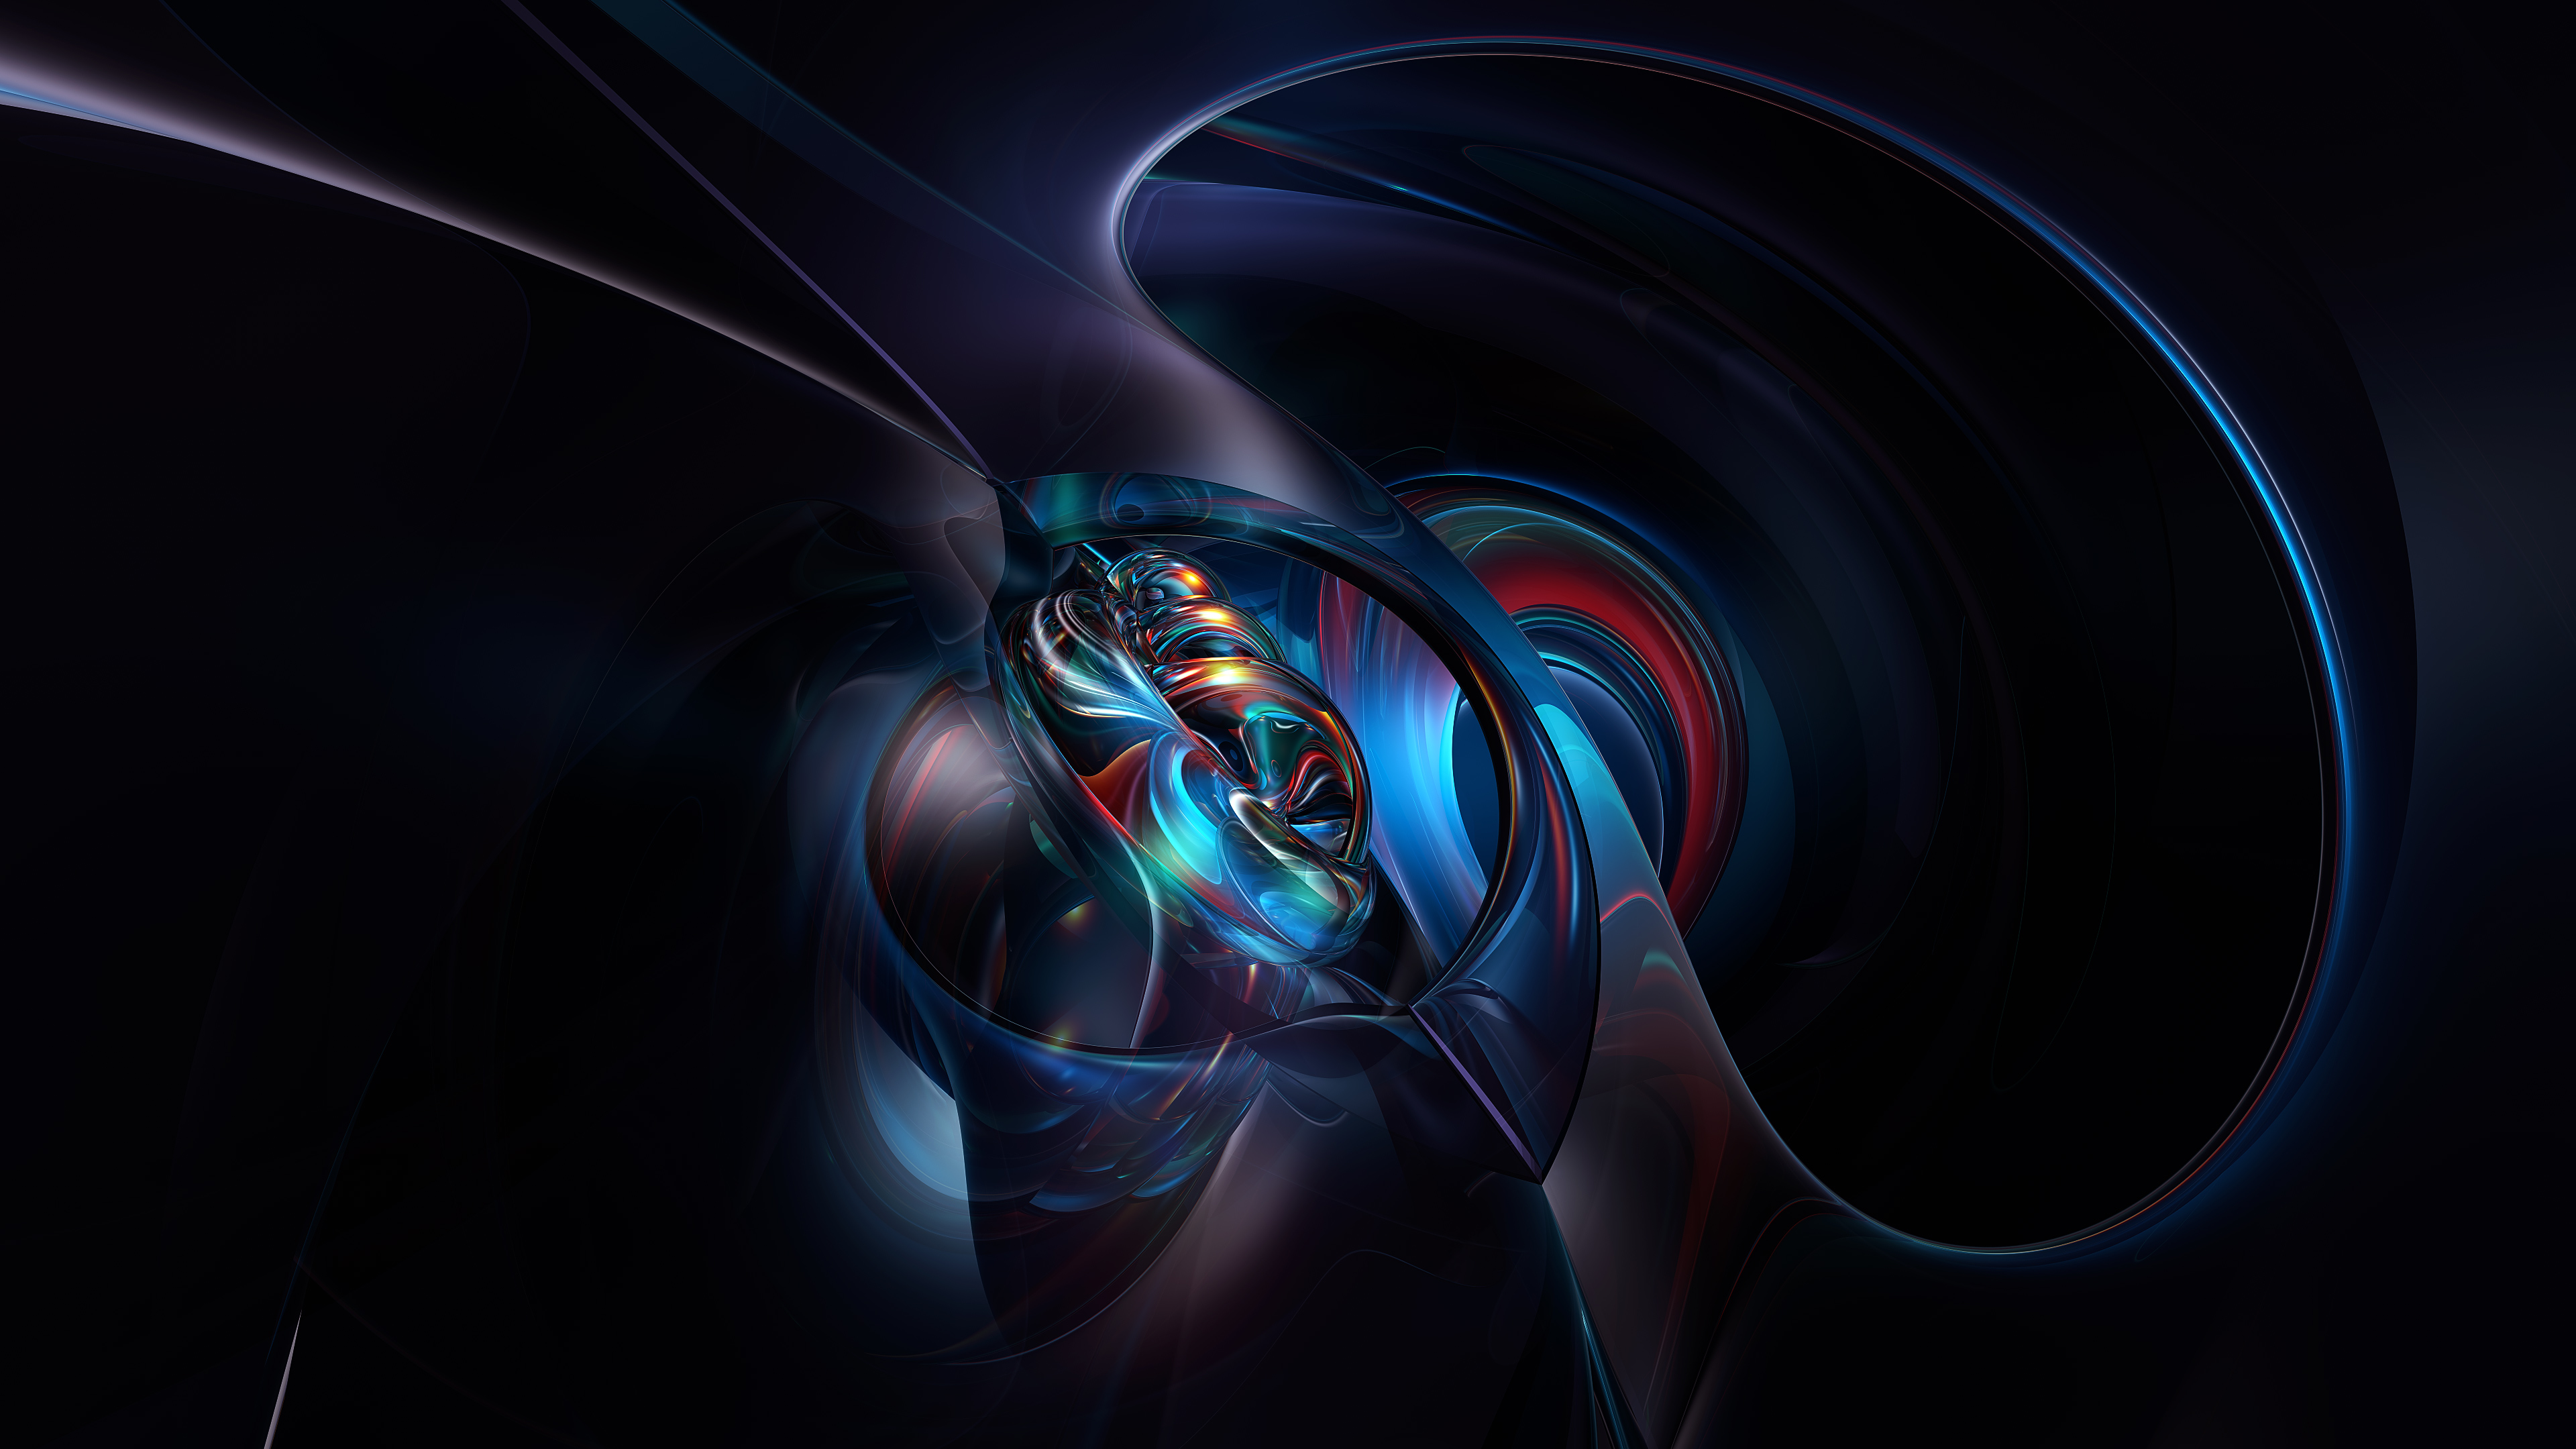 bauble abstract graphics 1565055998 - Bauble Abstract Graphics - hd-wallpapers, graphics wallpapers, digital art wallpapers, deviantart wallpapers, abstract wallpapers, 4k-wallpapers